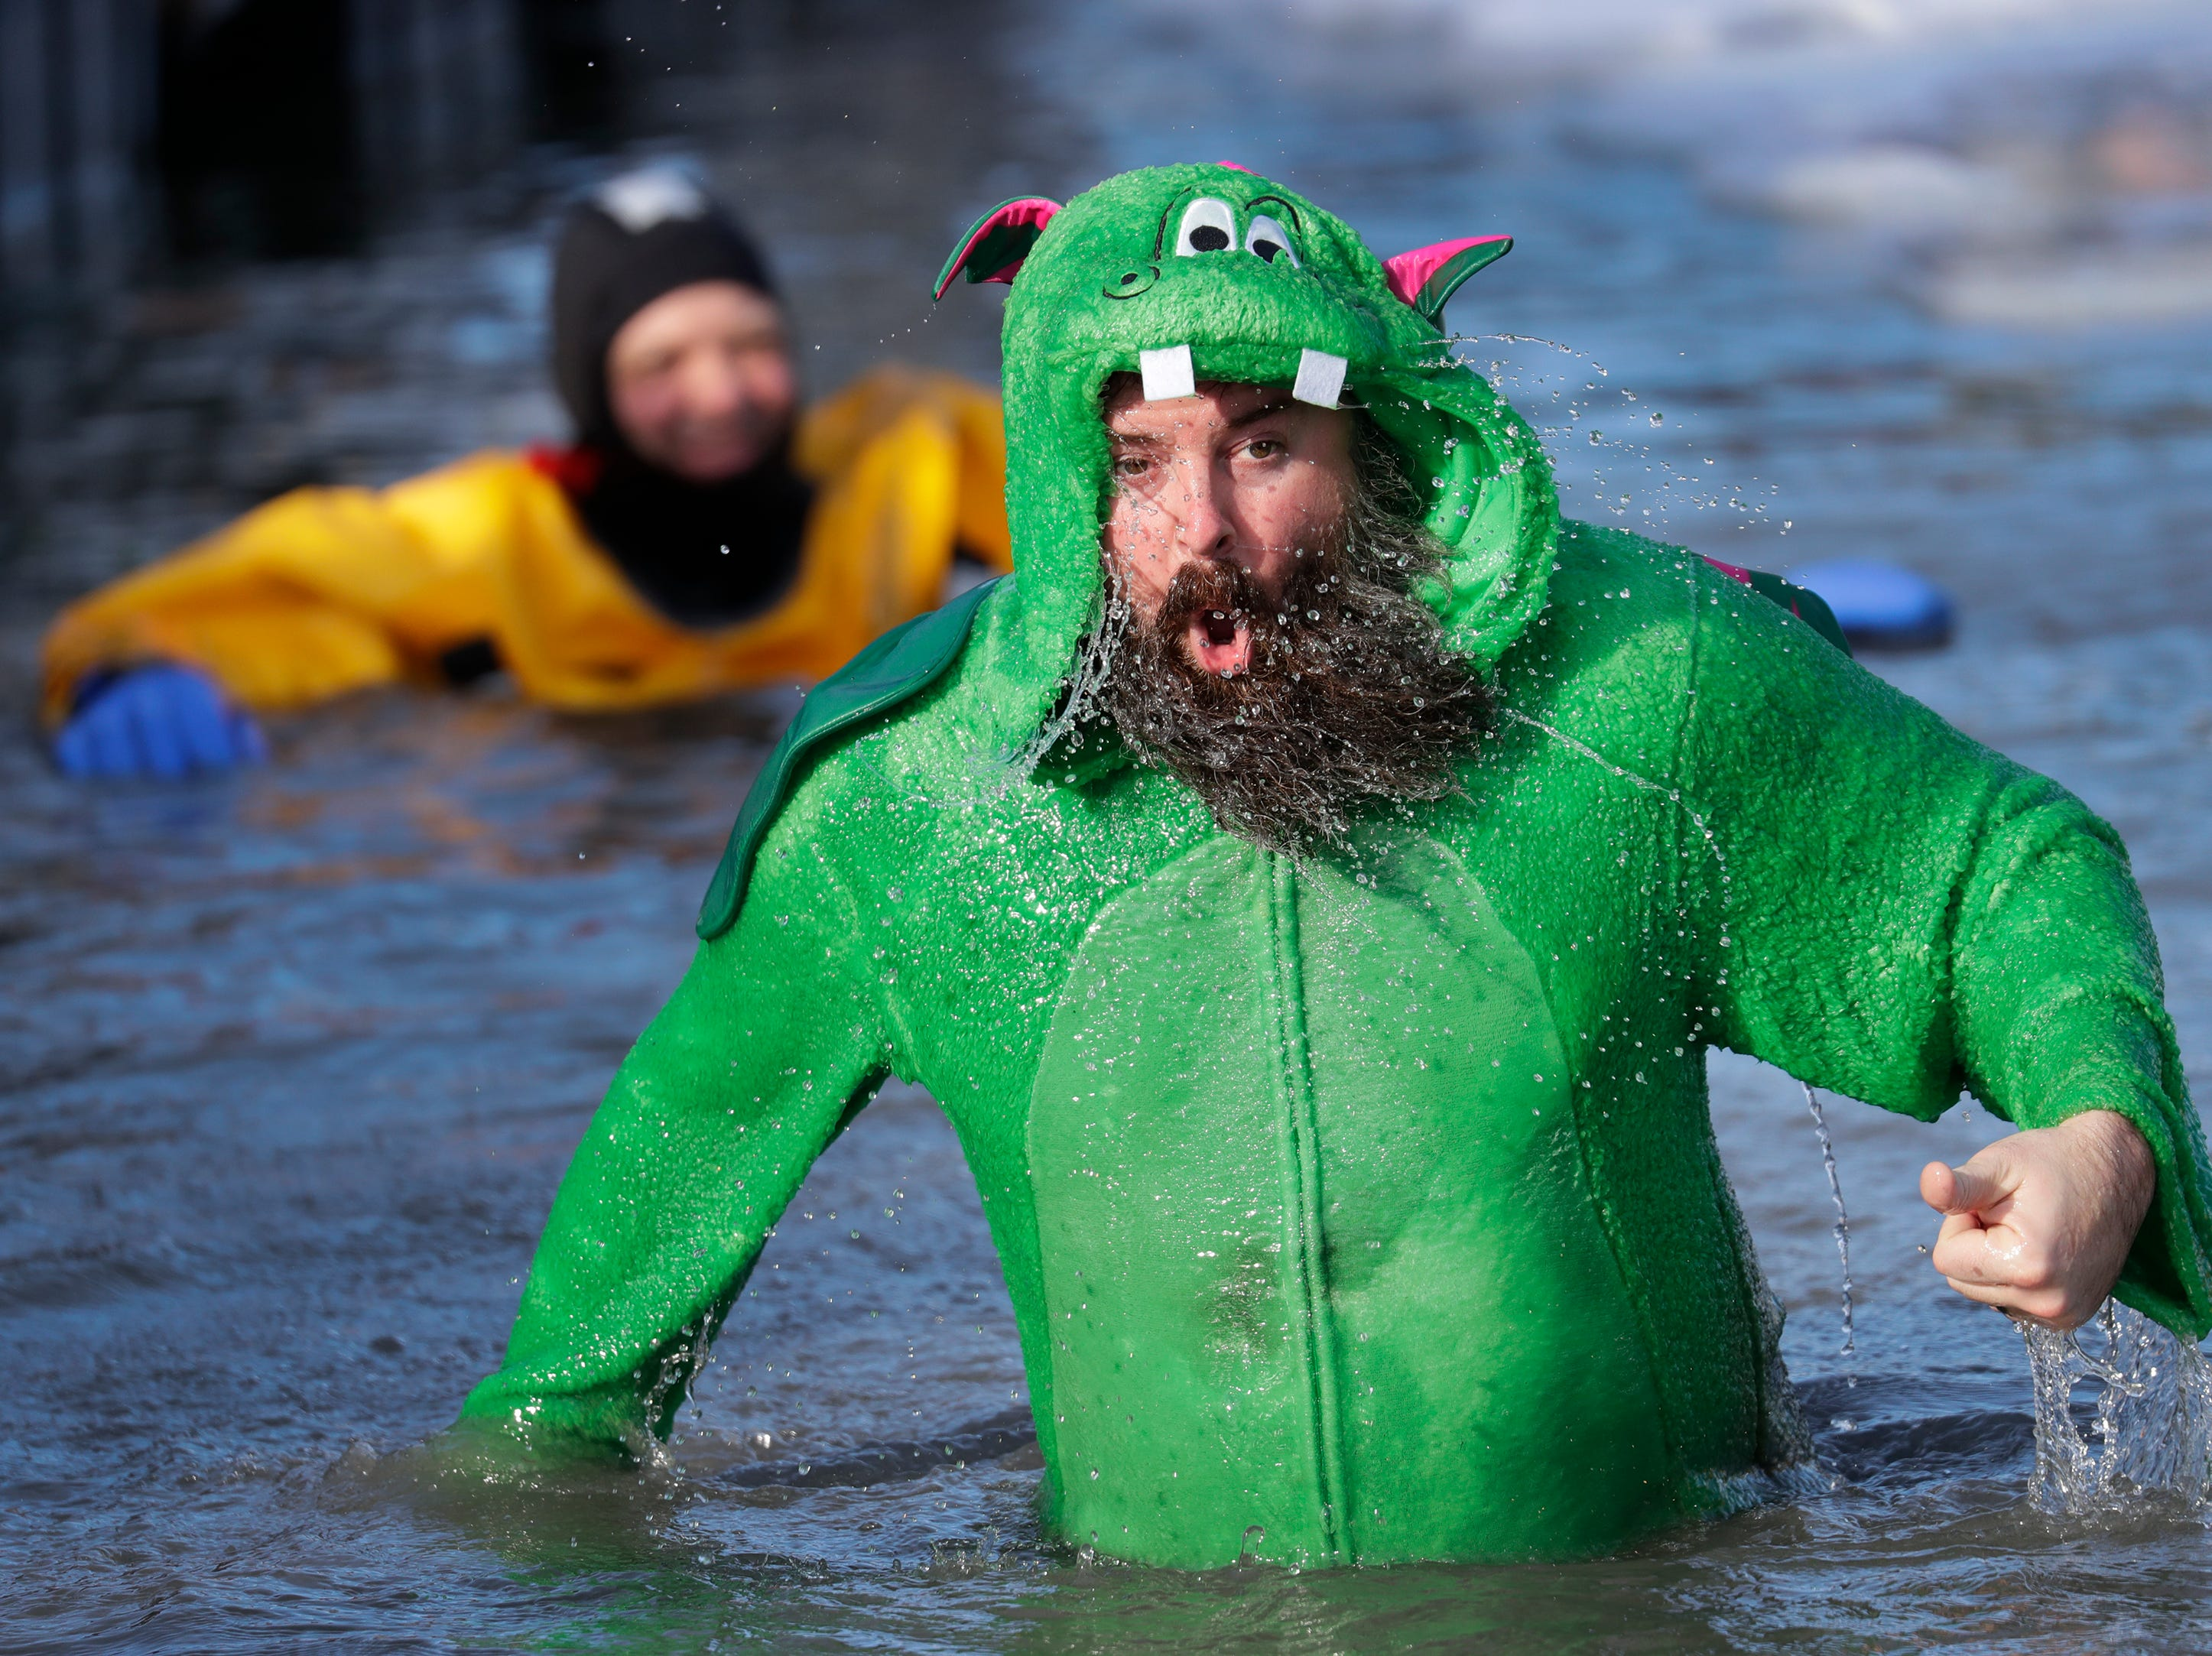 Danny Fili of Waupaca emerges from the frigid water during the Polar Bear Plunge Tuesday, January 1, 2019, at Becker Marine on Lime Kiln Lake in Waupaca, Wis. 